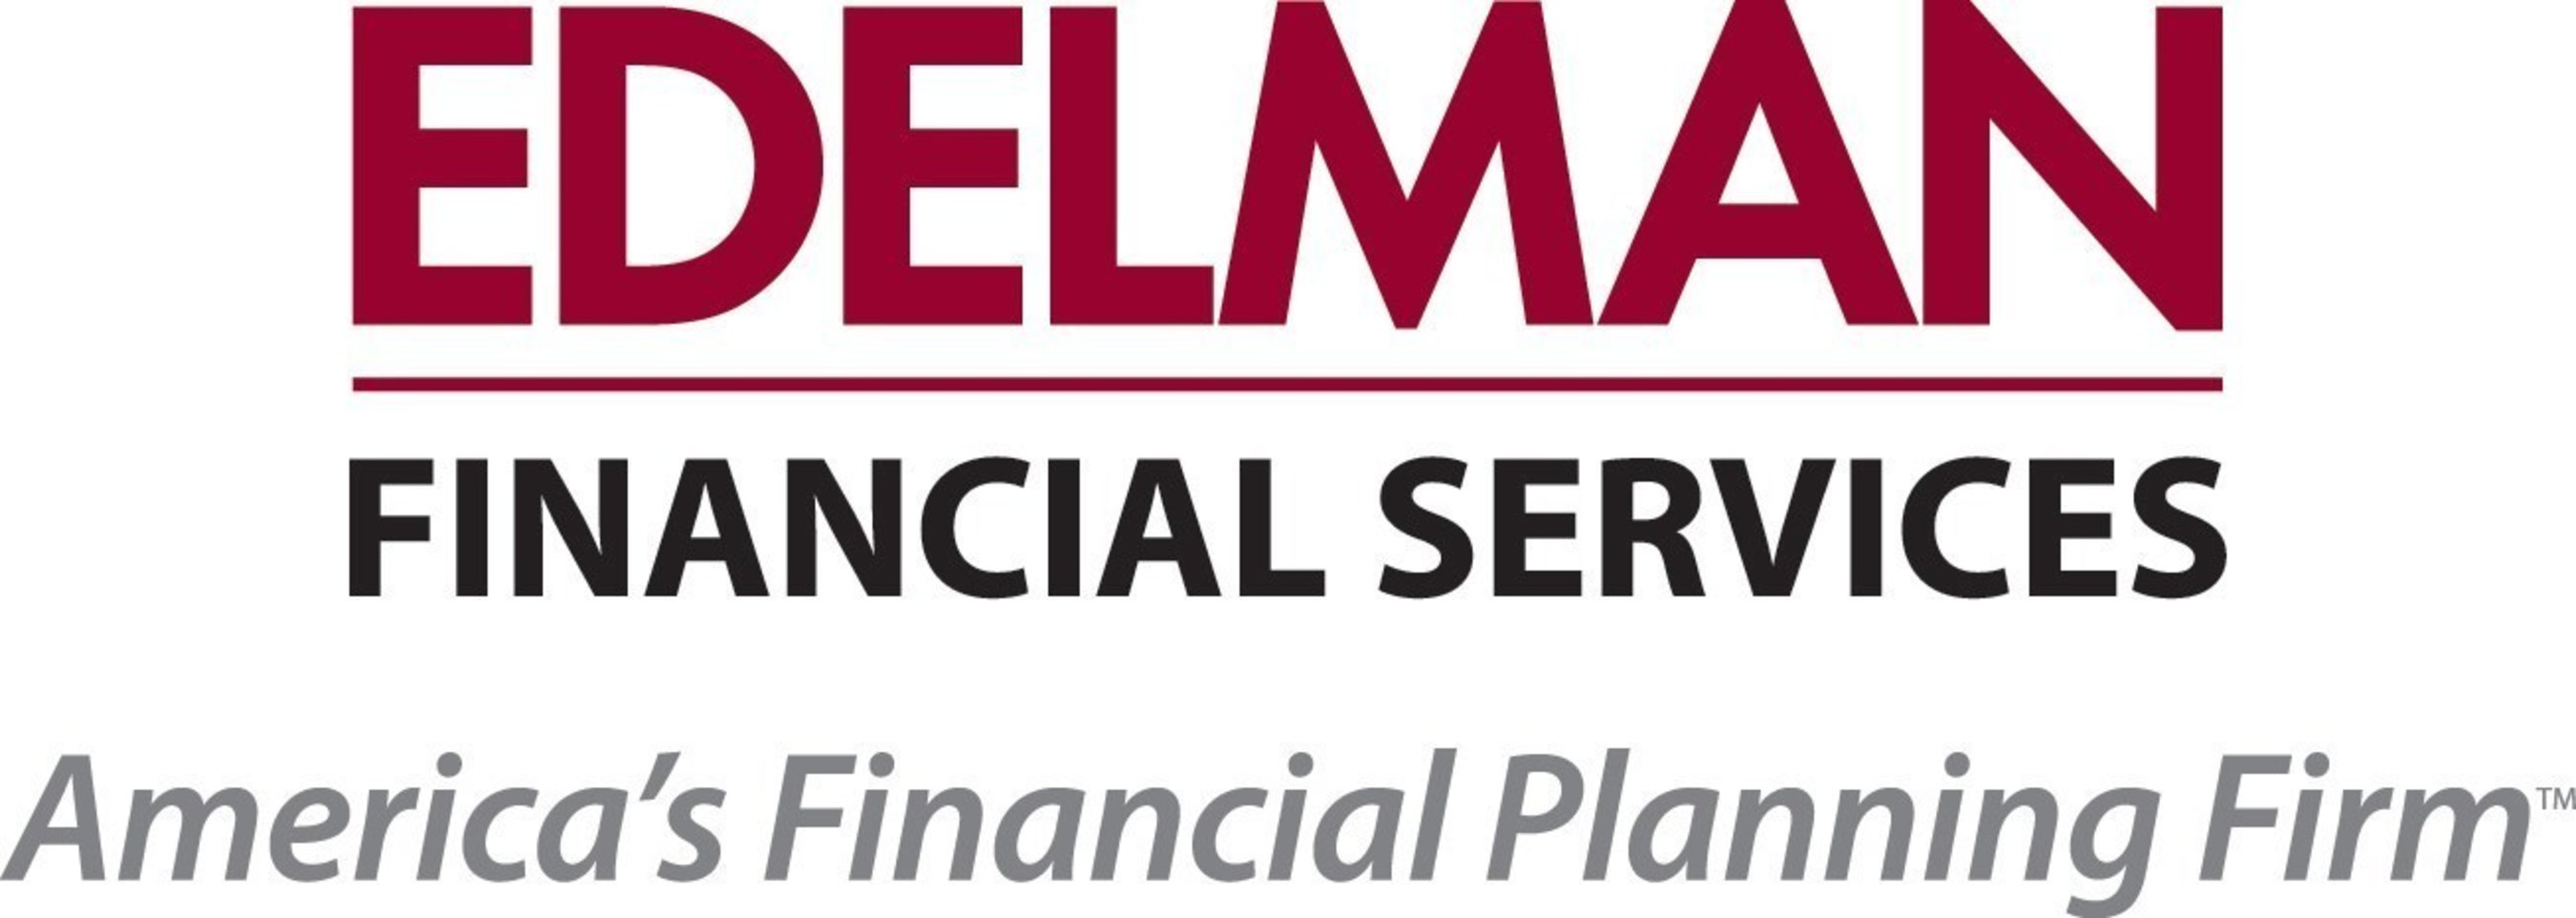 Edelman Financial Services